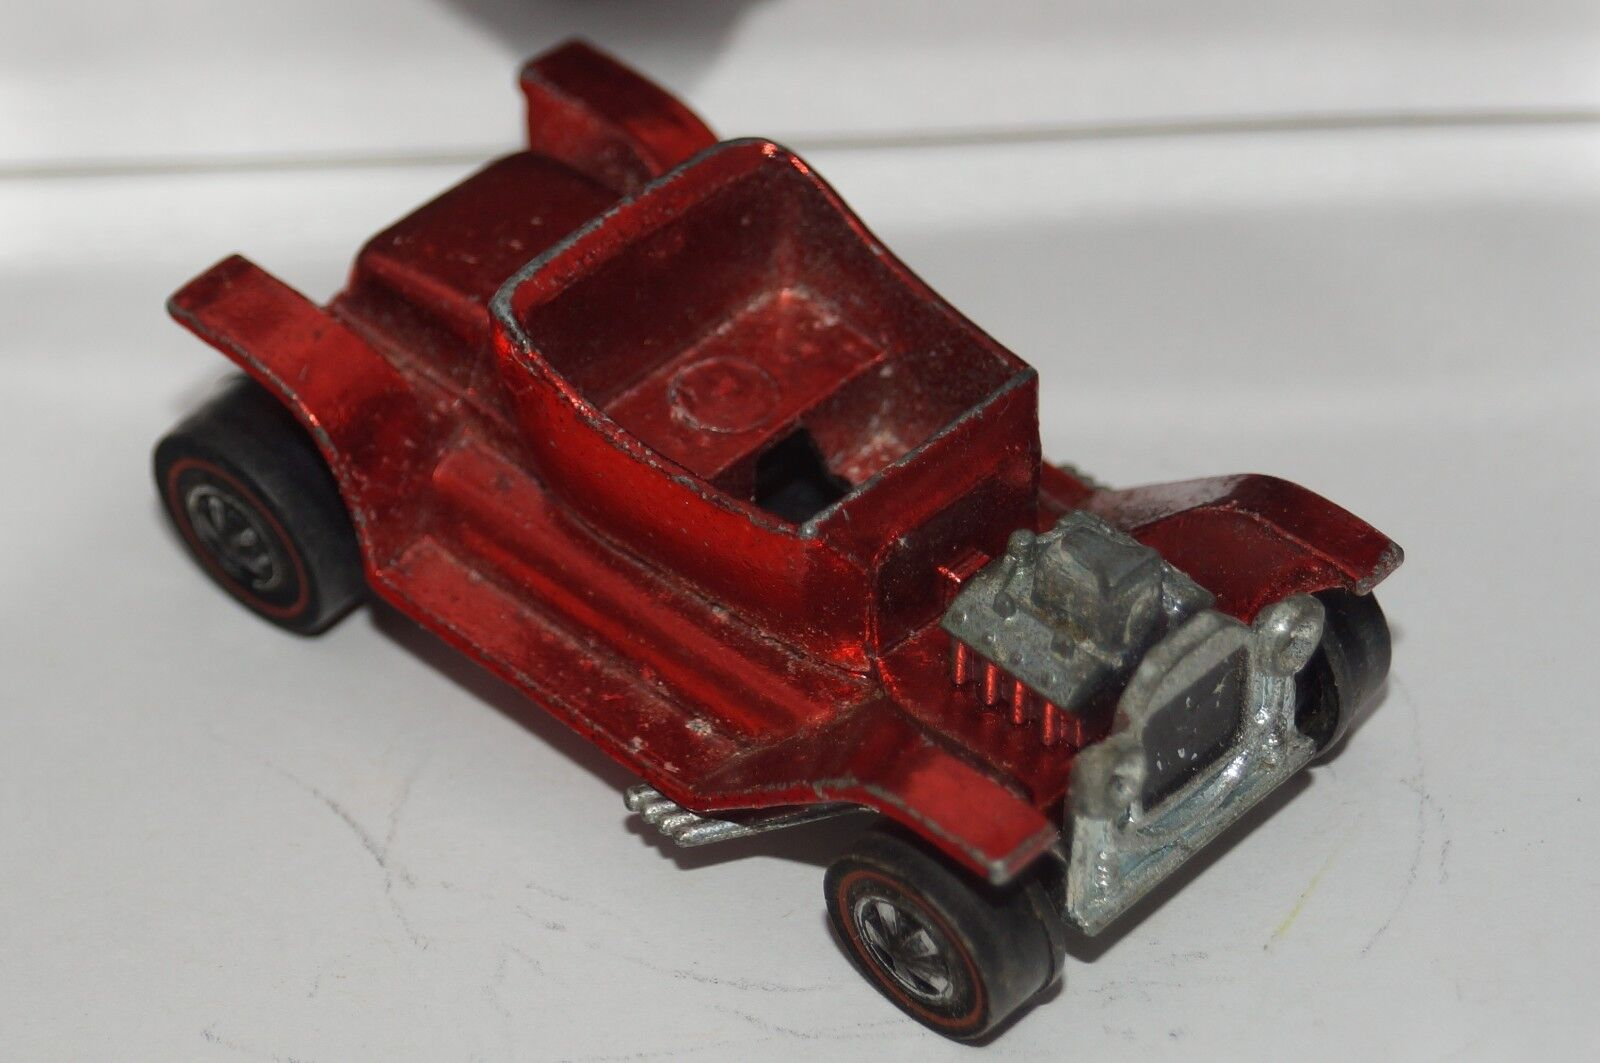 ORIGINAL Hot Wheels - Redline - HOT HEAP - Red color - MISSING SEAT